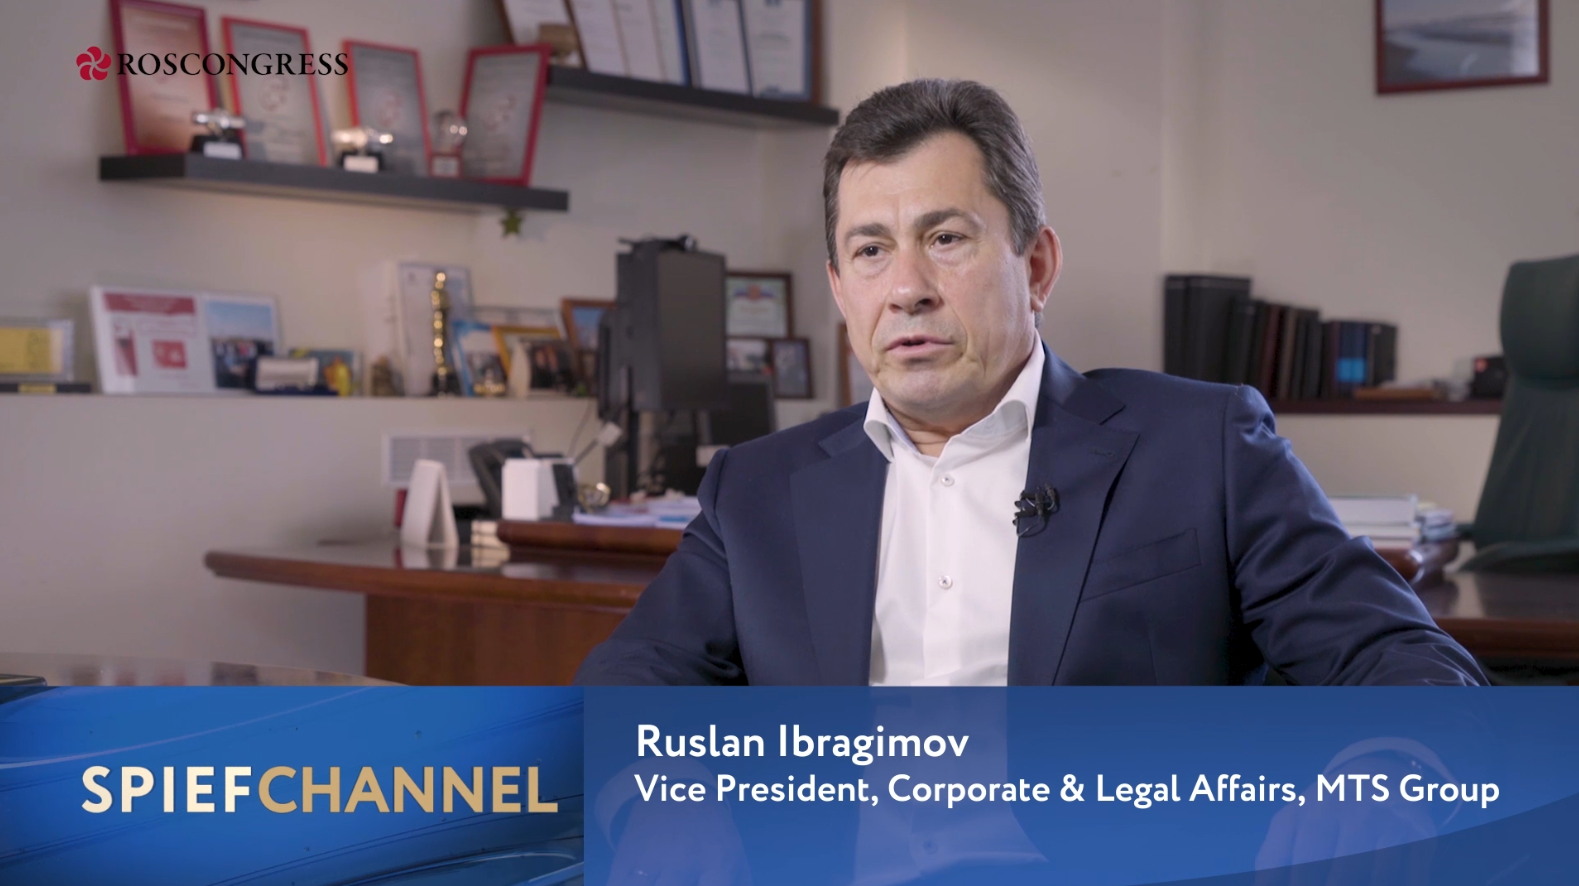 Ruslan Ibragimov, Vice President for Corporate and Legal Affairs, MTS PJSC